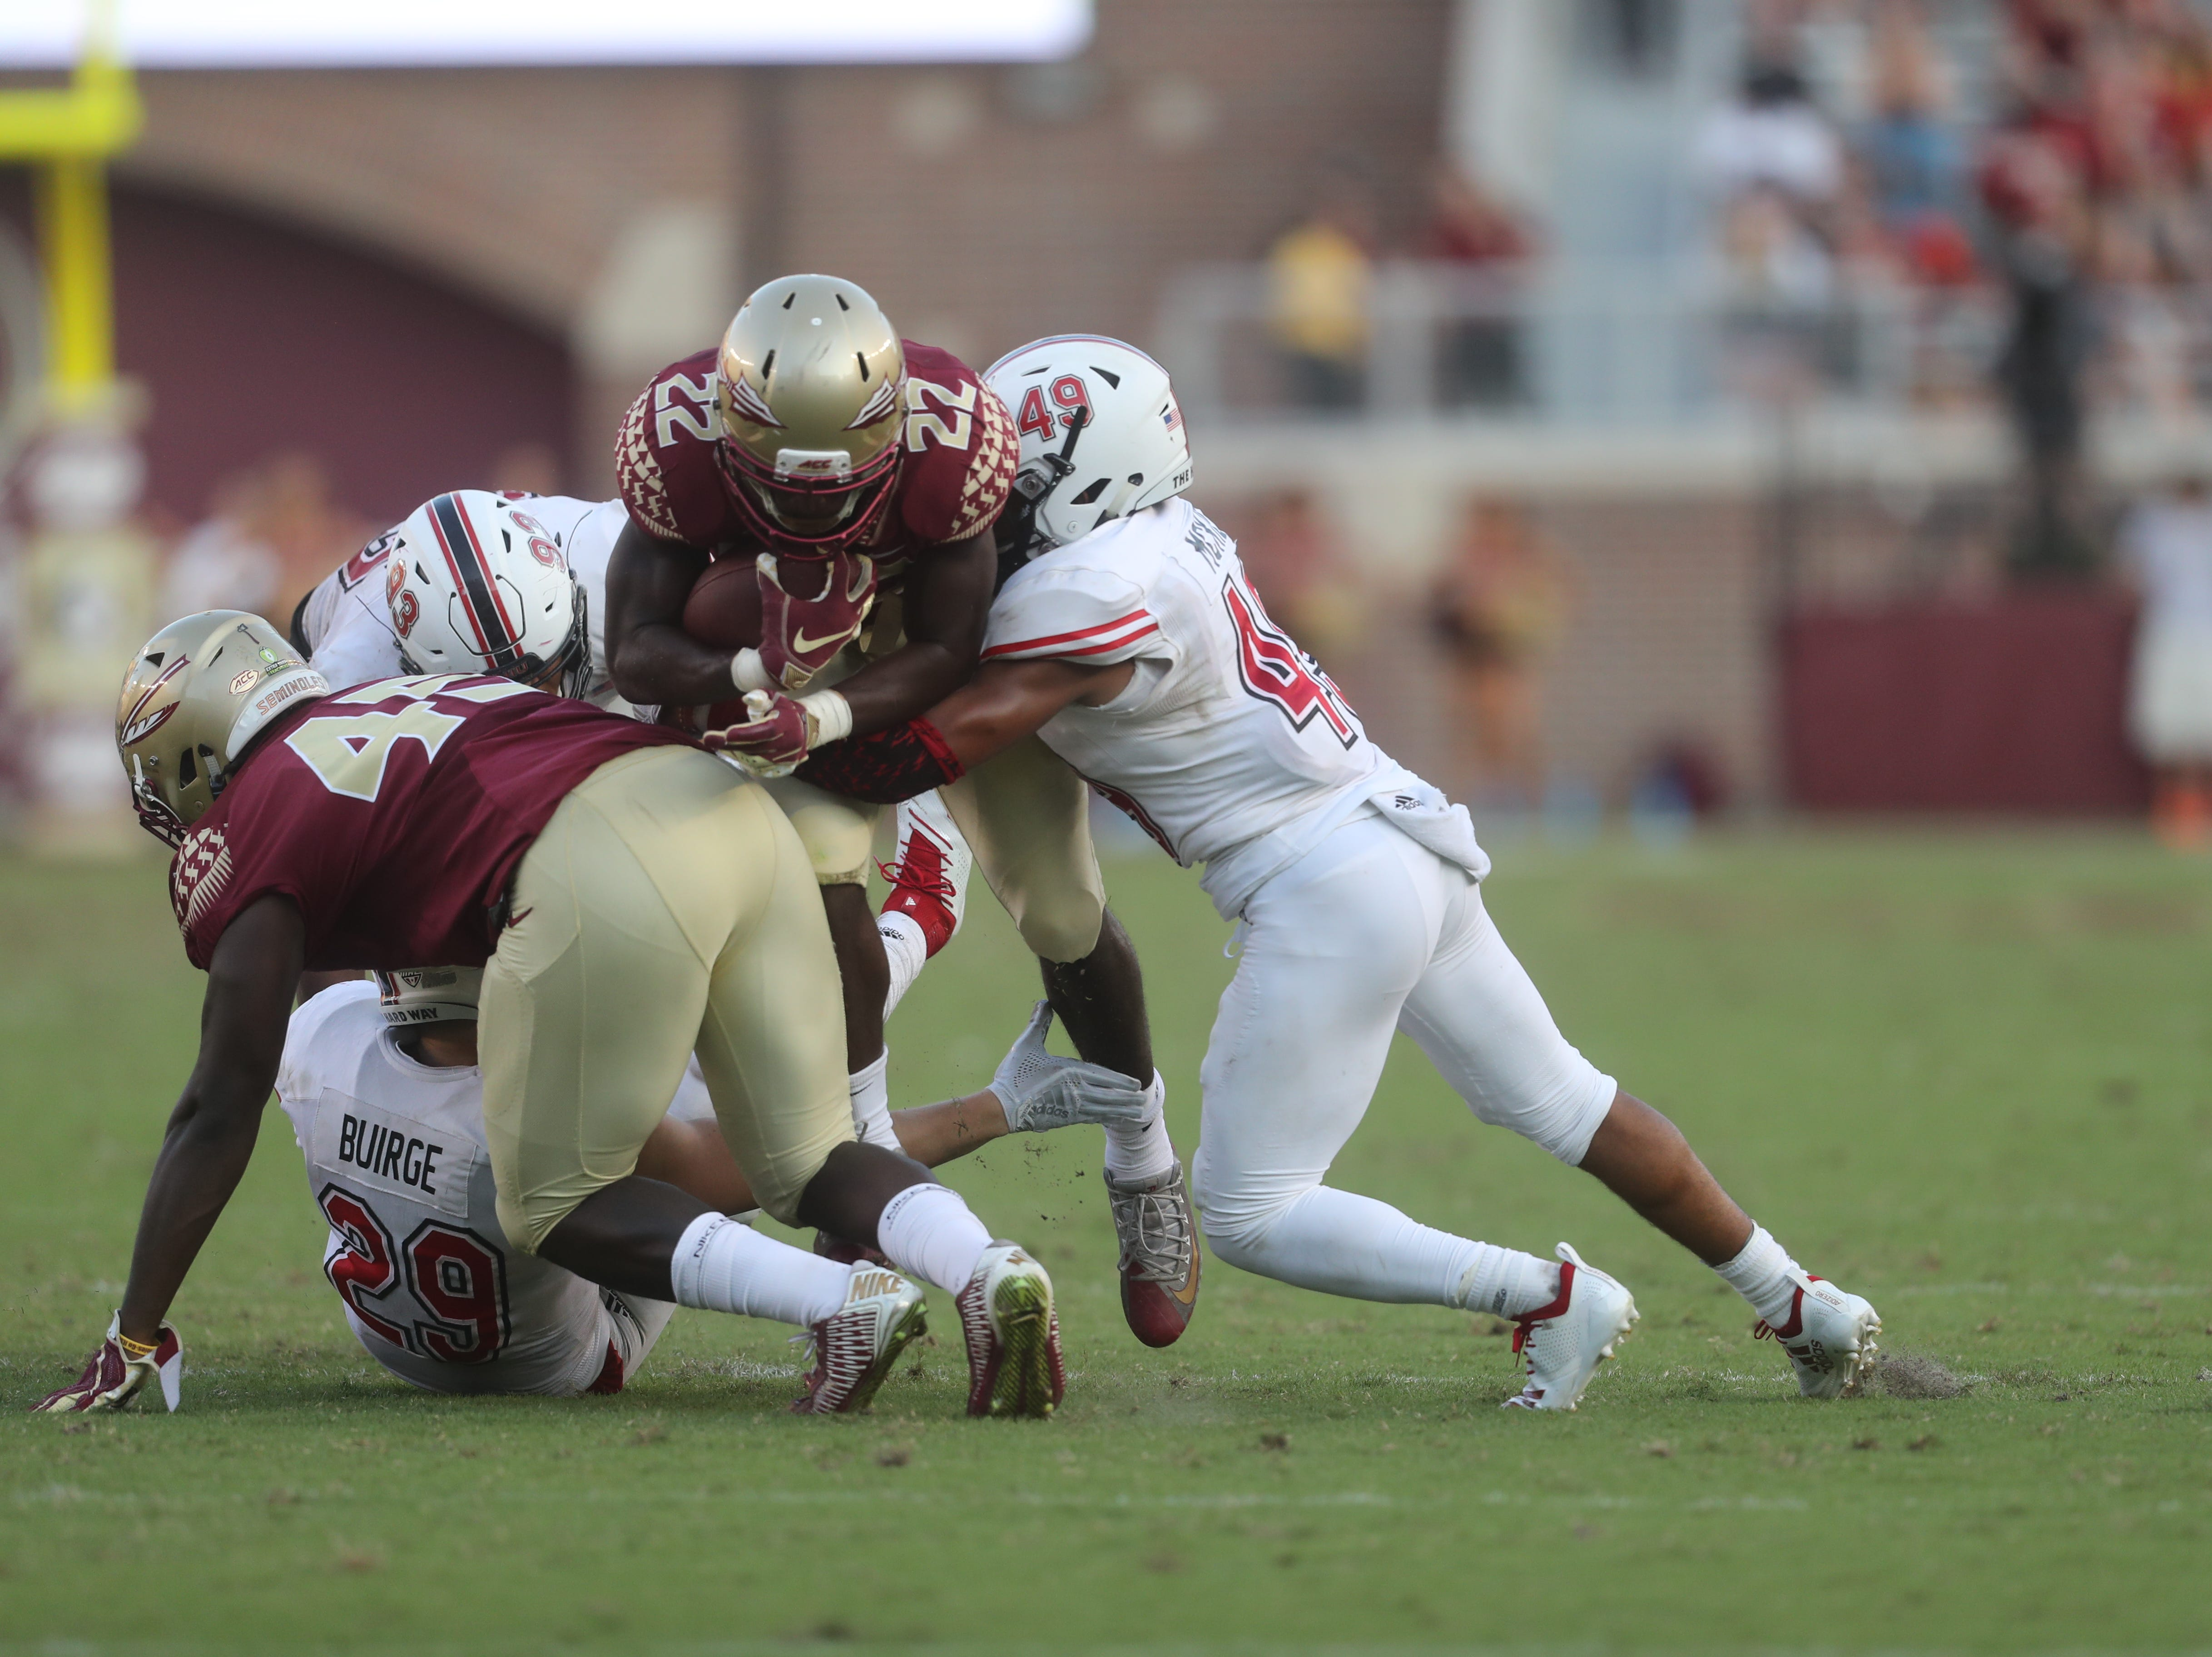 Florida State Seminoles running back Amir Rasul (22) gets tackled by a pack of Huskies during a game between the Florida State University Seminoles and the Northern Illinois University Huskies at Doak S. Campbell Stadium in Tallahassee, Fla. Saturday, September 22, 2018.